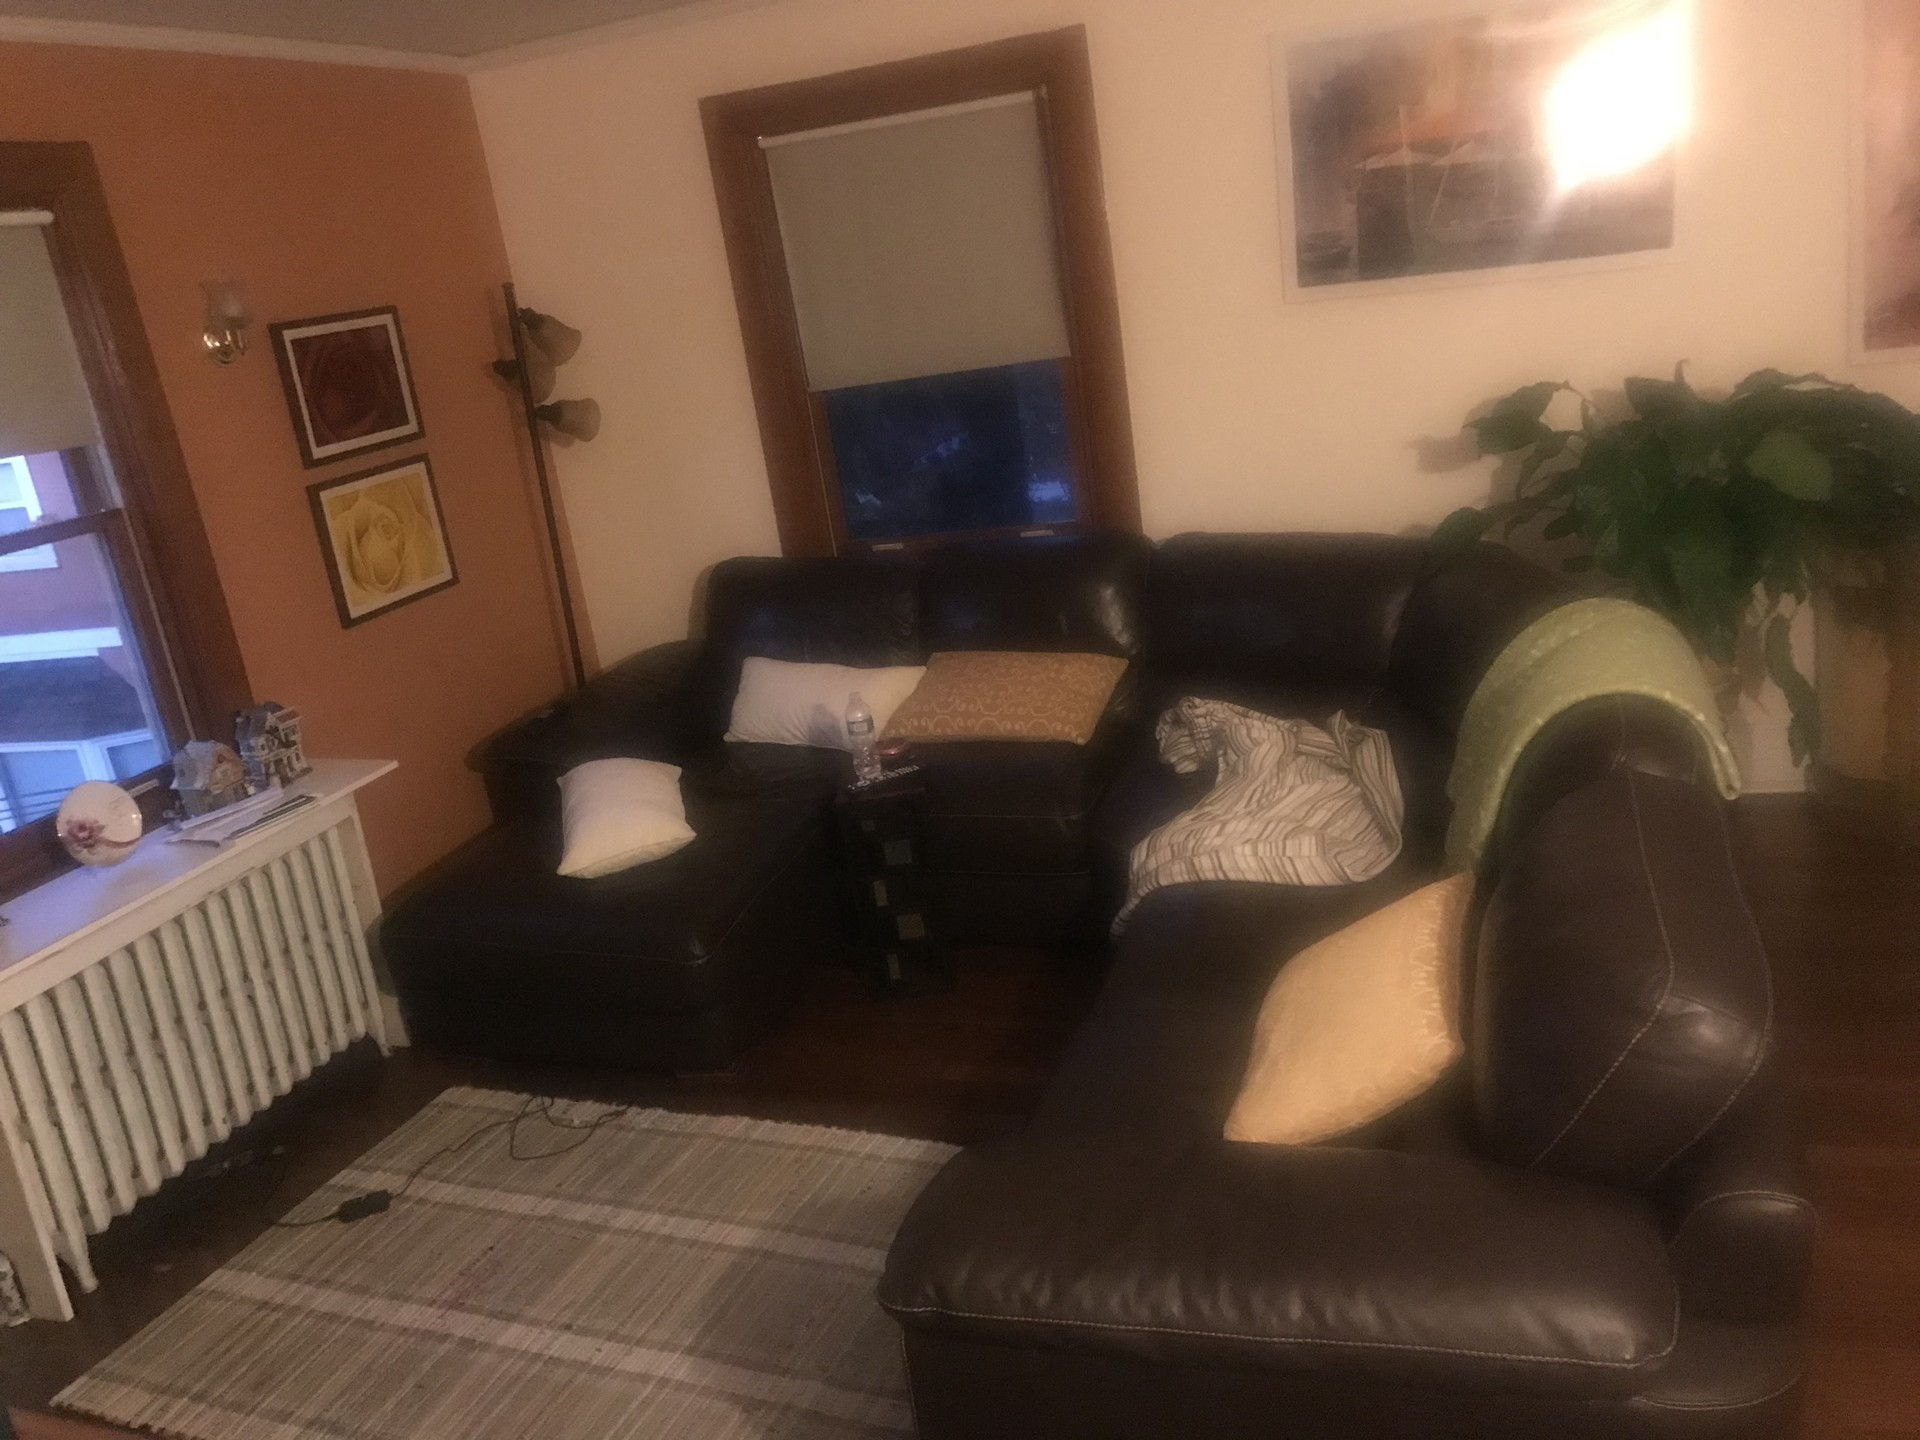 Large Room For Rent In Westchester New York With Private Bathroom - Rooms for rent in nyc with private bathroom